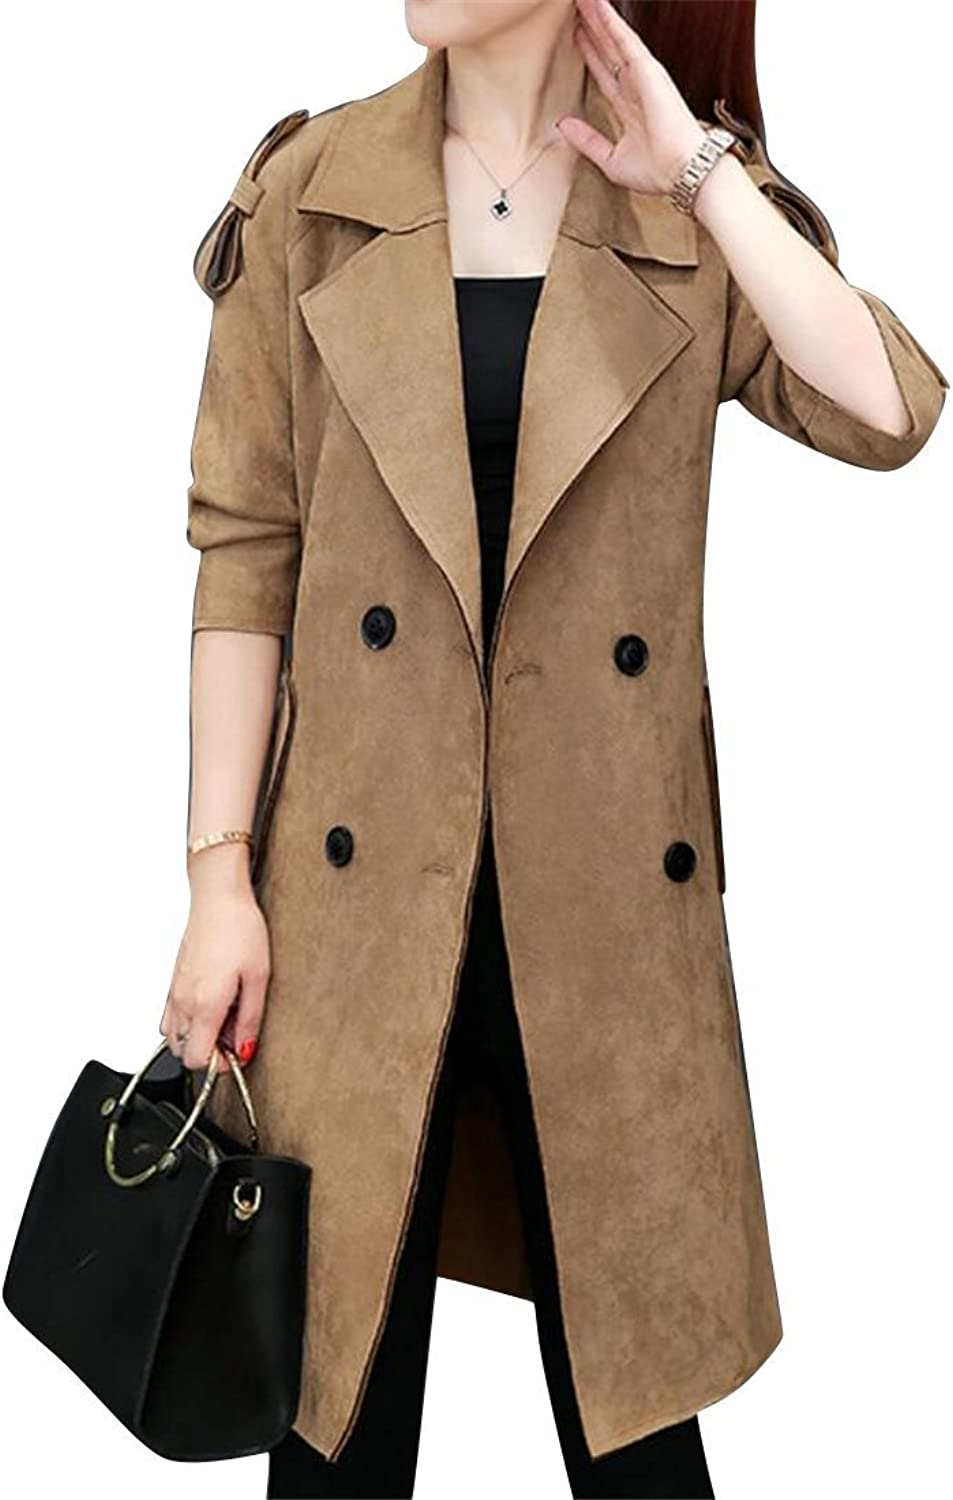 Jotebriyo Women Double Breasted Stylish Turn Down Collar Suede Fabric Faux Leather Longline Jacket Trench Coats